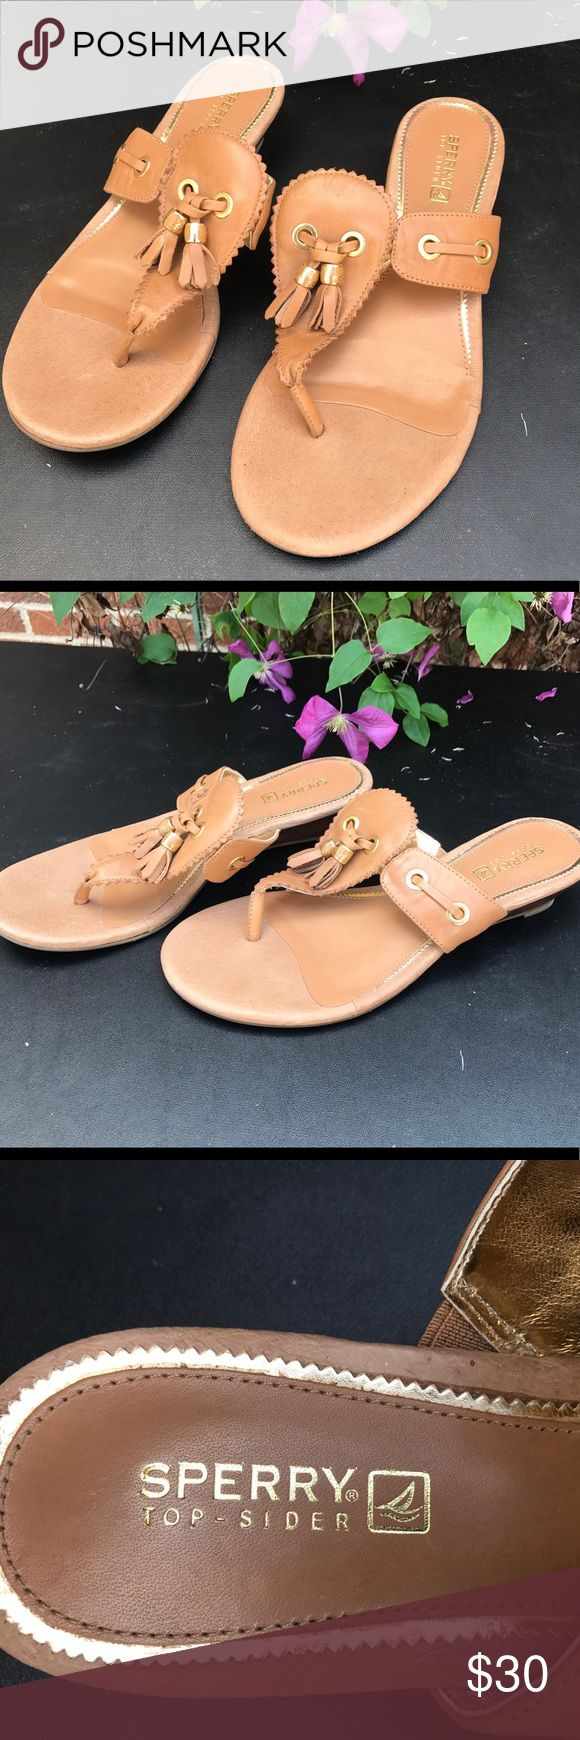 Sherry Top Sider sandals size 7.5 Super cute brown Sperry sandals Womens size 7.5 great condition non smoking home Sperry Top-Sider Shoes Sandals